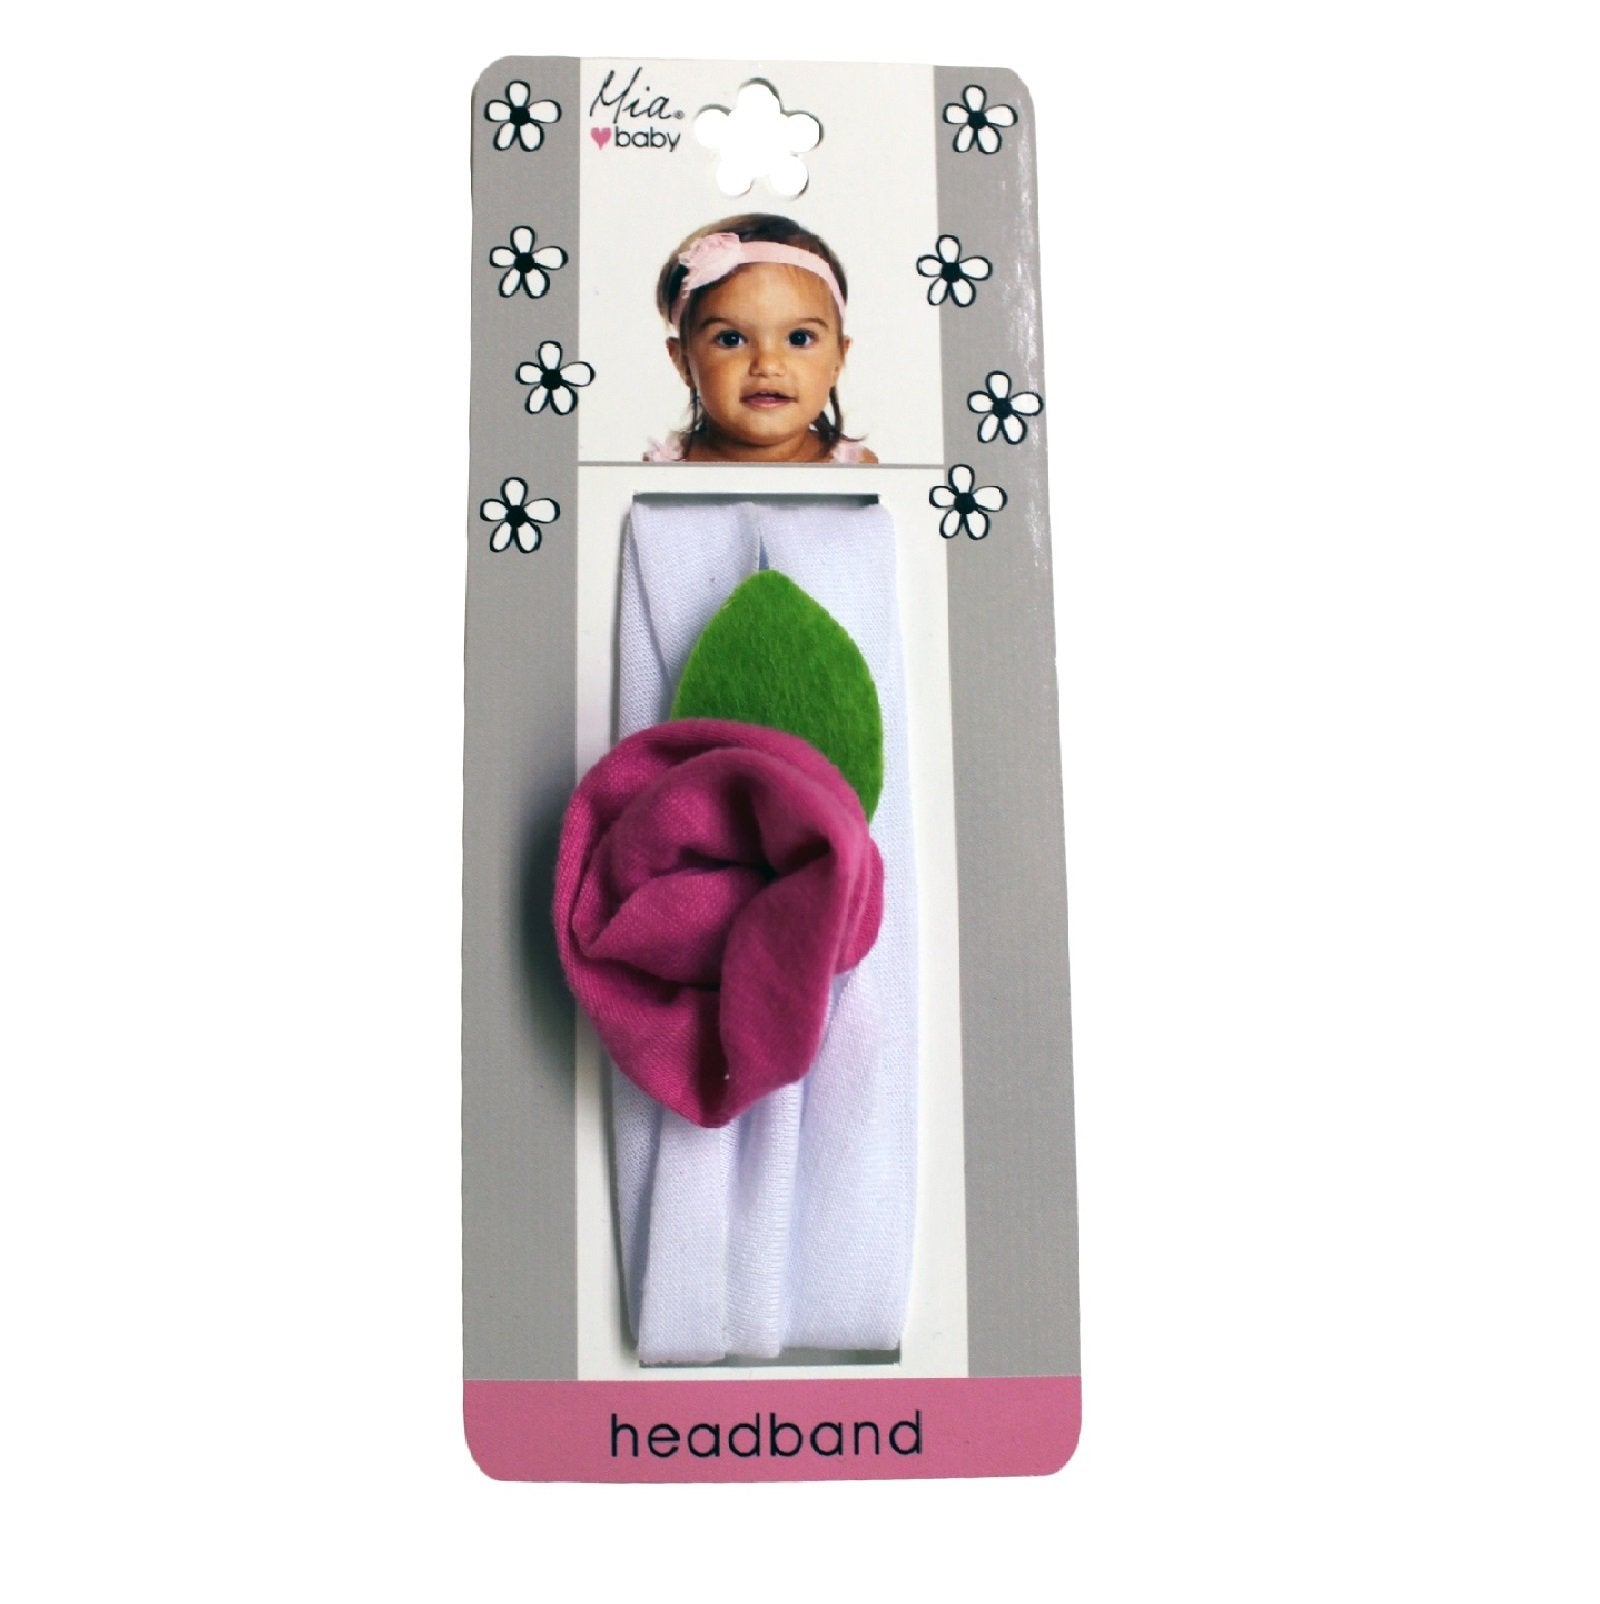 Mia® Baby Jersey Flower Headband - white band with hot pink flower - shown on packaging - invented by #MiaKaminski #MiaBeauty #Mia #Beauty #Baby #hair #hairaccessories #hairclips #hairbarrettes #love #life #girl #woman